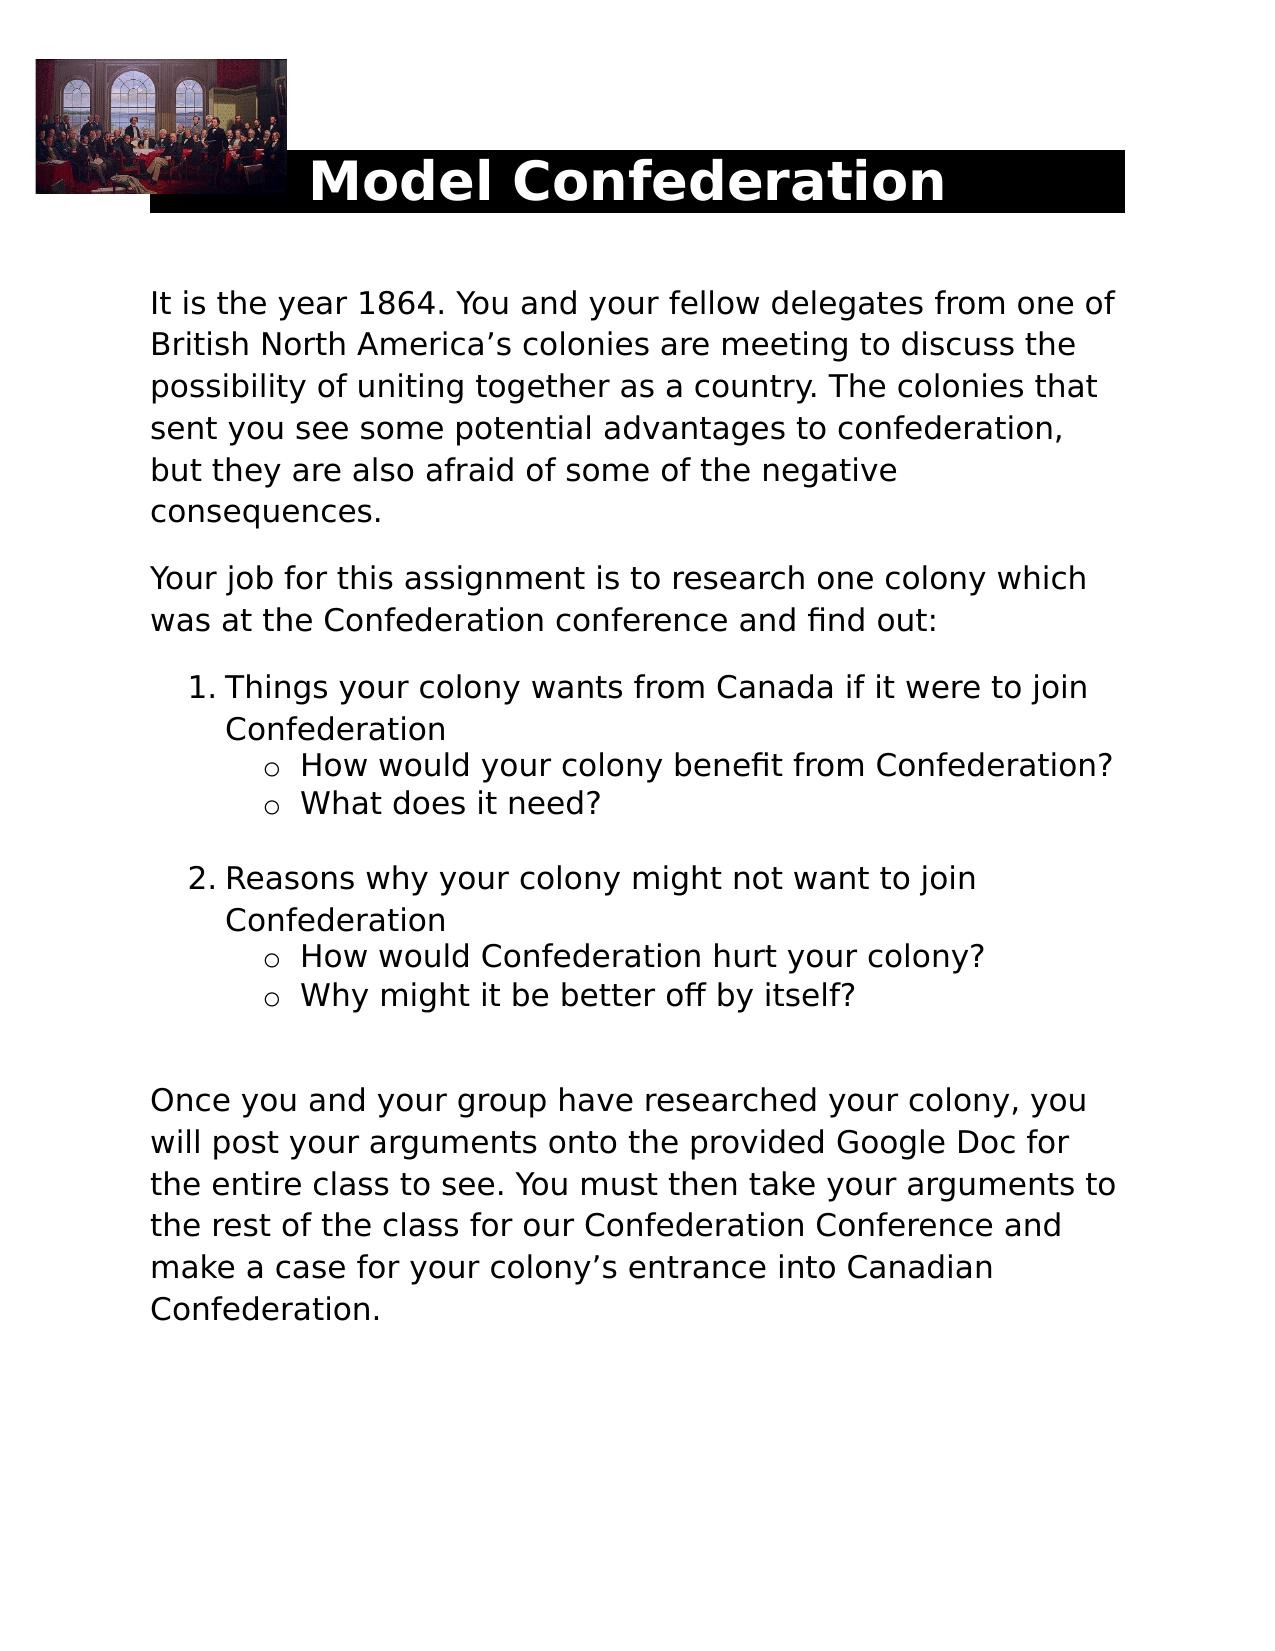 Model Confederation Assignment Resource Preview